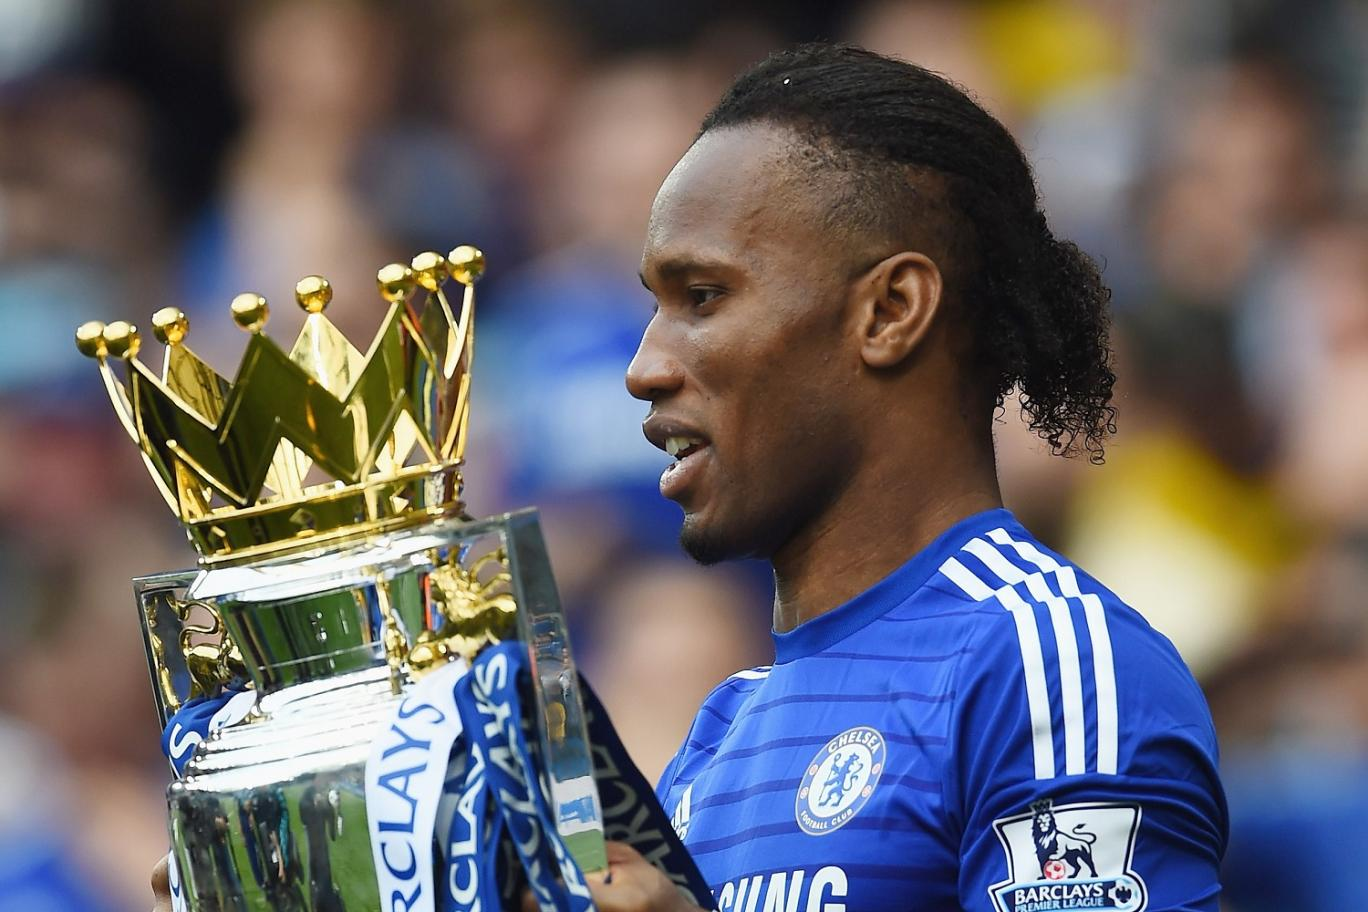 READ Di r Drogba Is Not Going To Retire